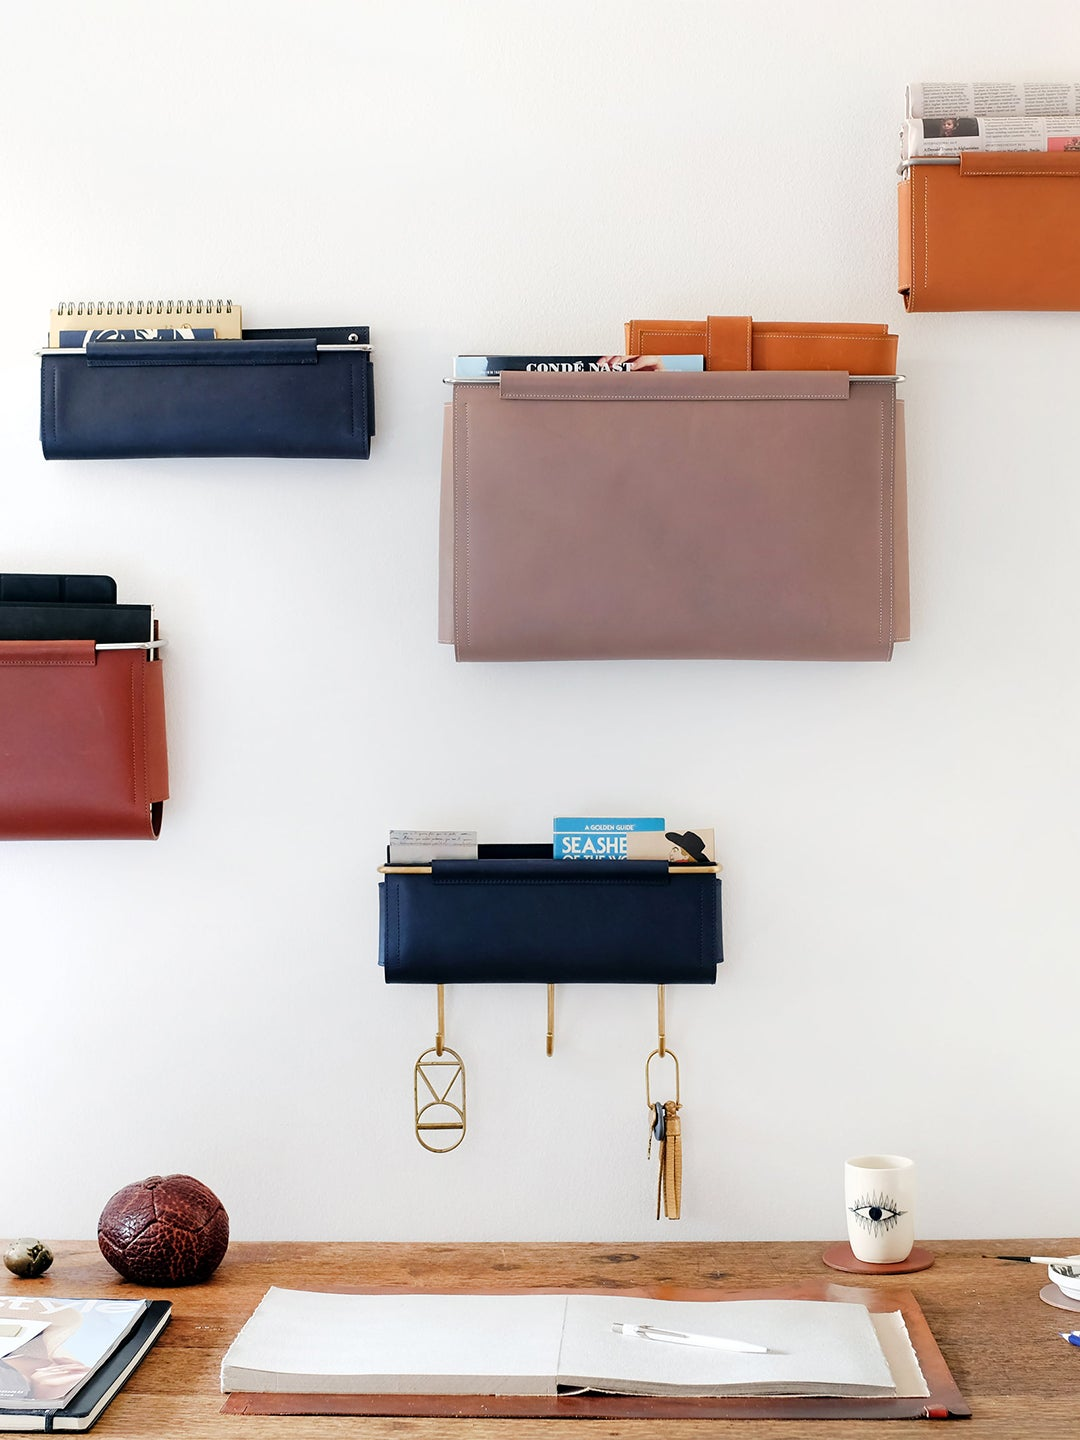 leather pockets on the wall